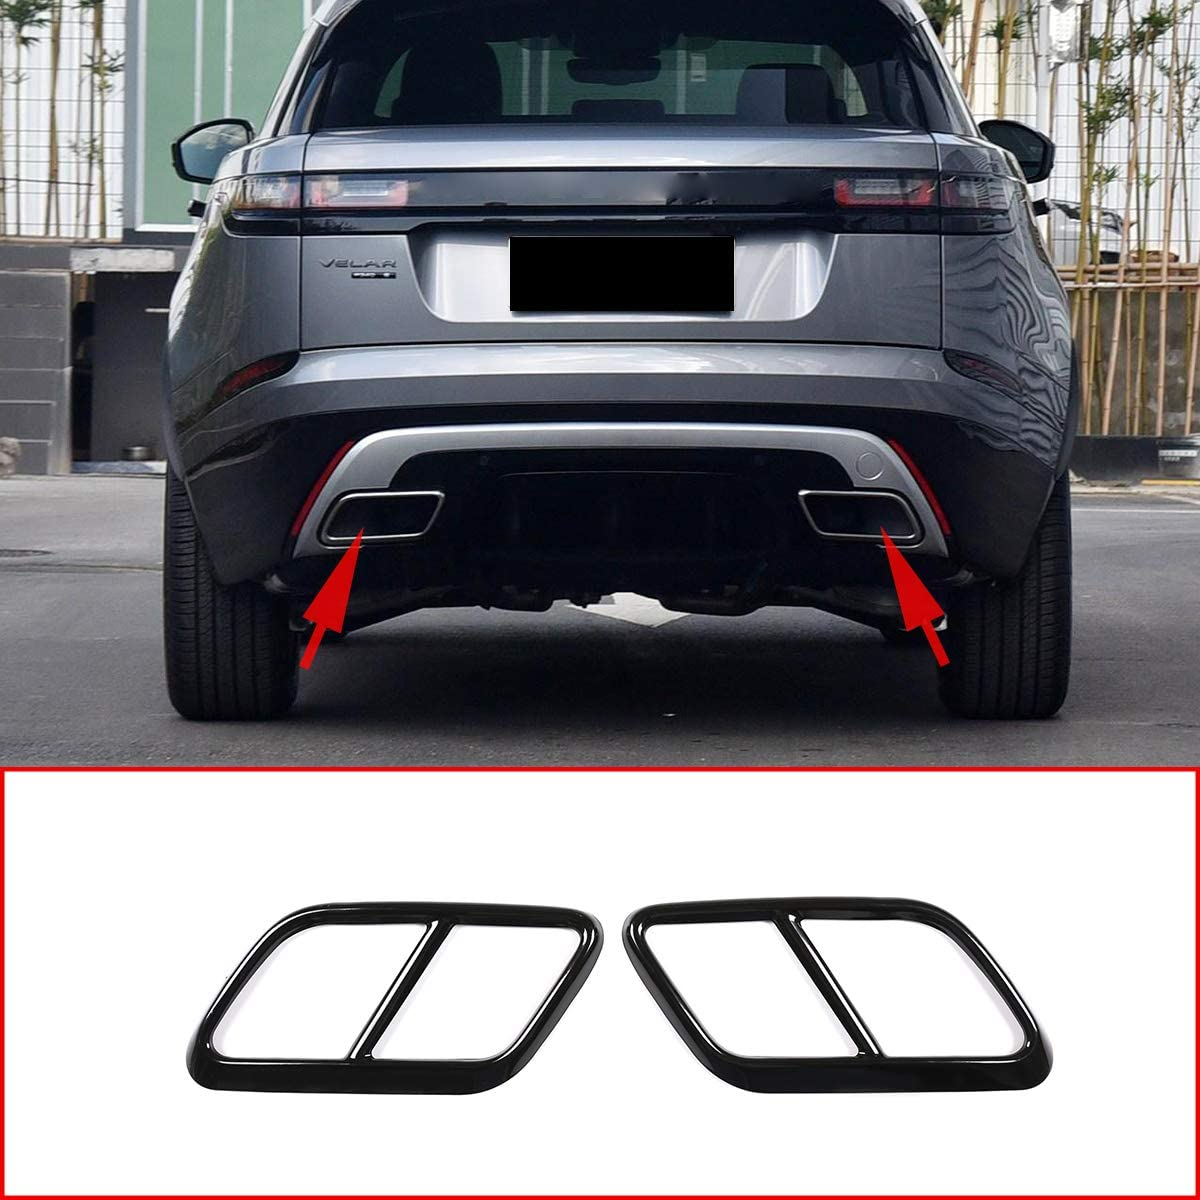 CHEYA Stainless Steel Pipe Throat Exhaust Outputs Tail Frame Trim Cover 2Pcs For Land Rover Range Rover Velar 2017 2018 2019 Auto Accessories